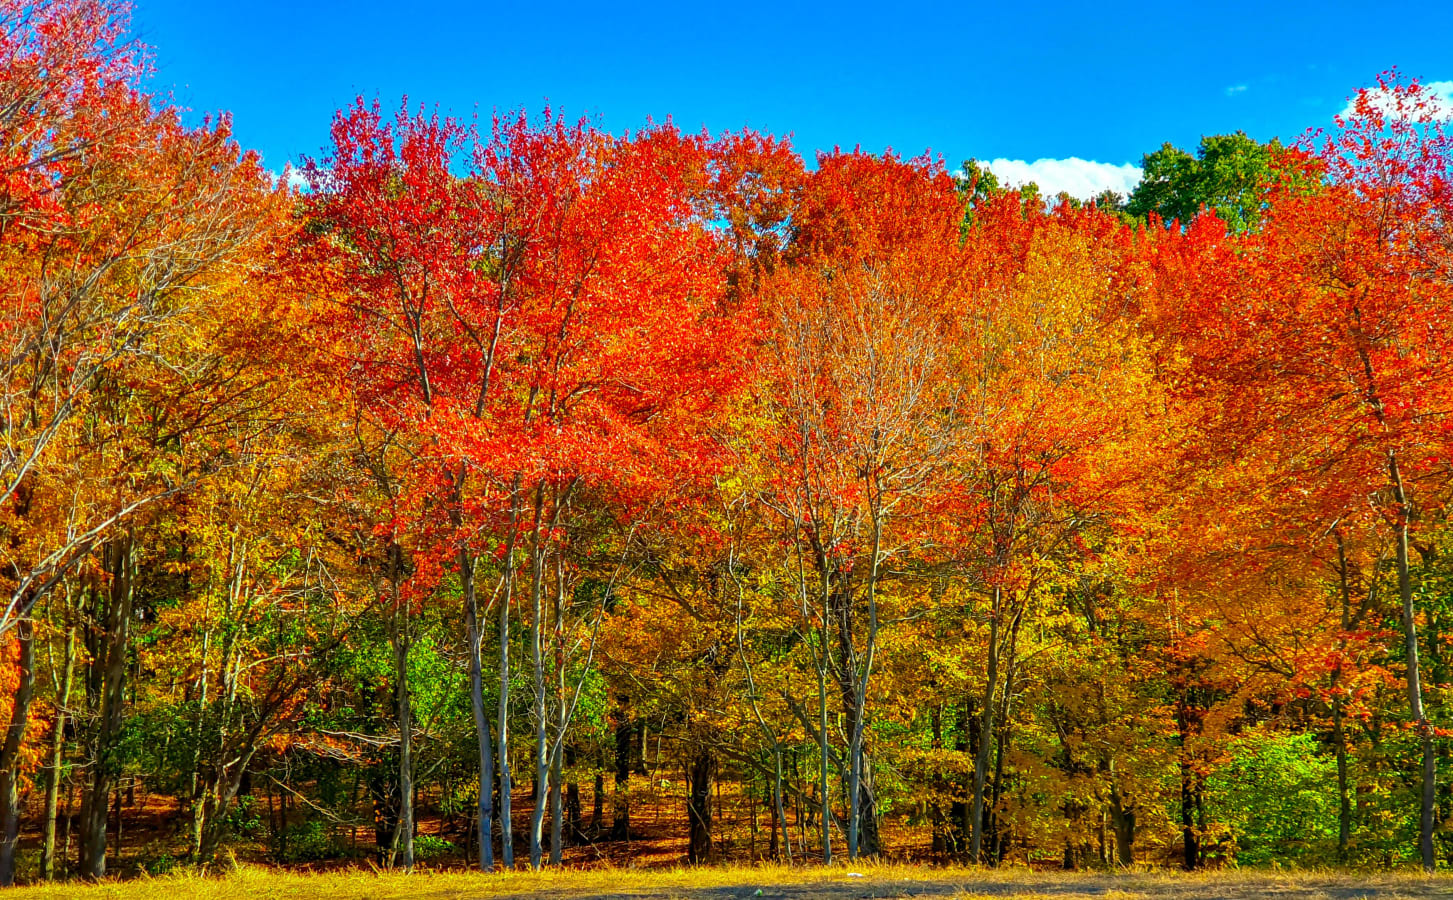 10 Tips for Great Autumn Photography